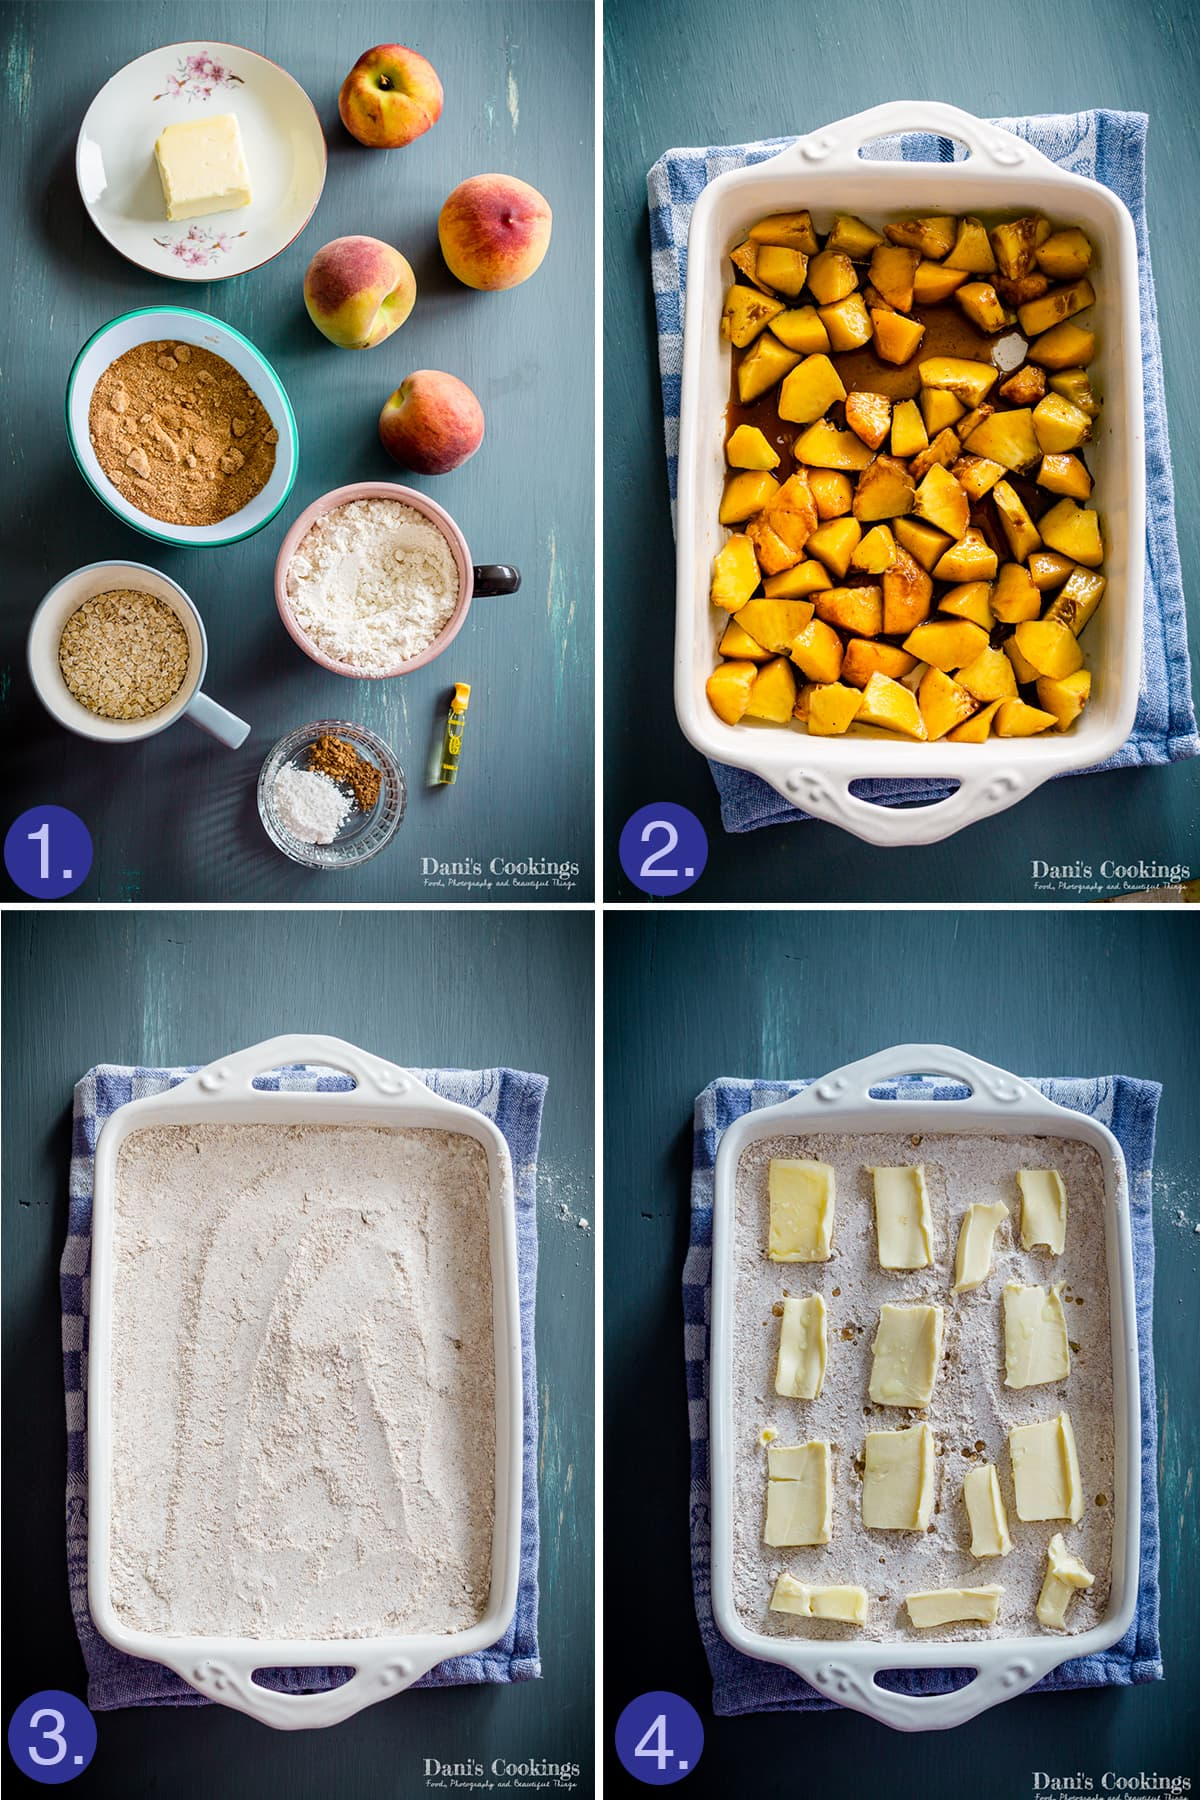 steps to make peach dump cake - ingredients and layering them in the pan